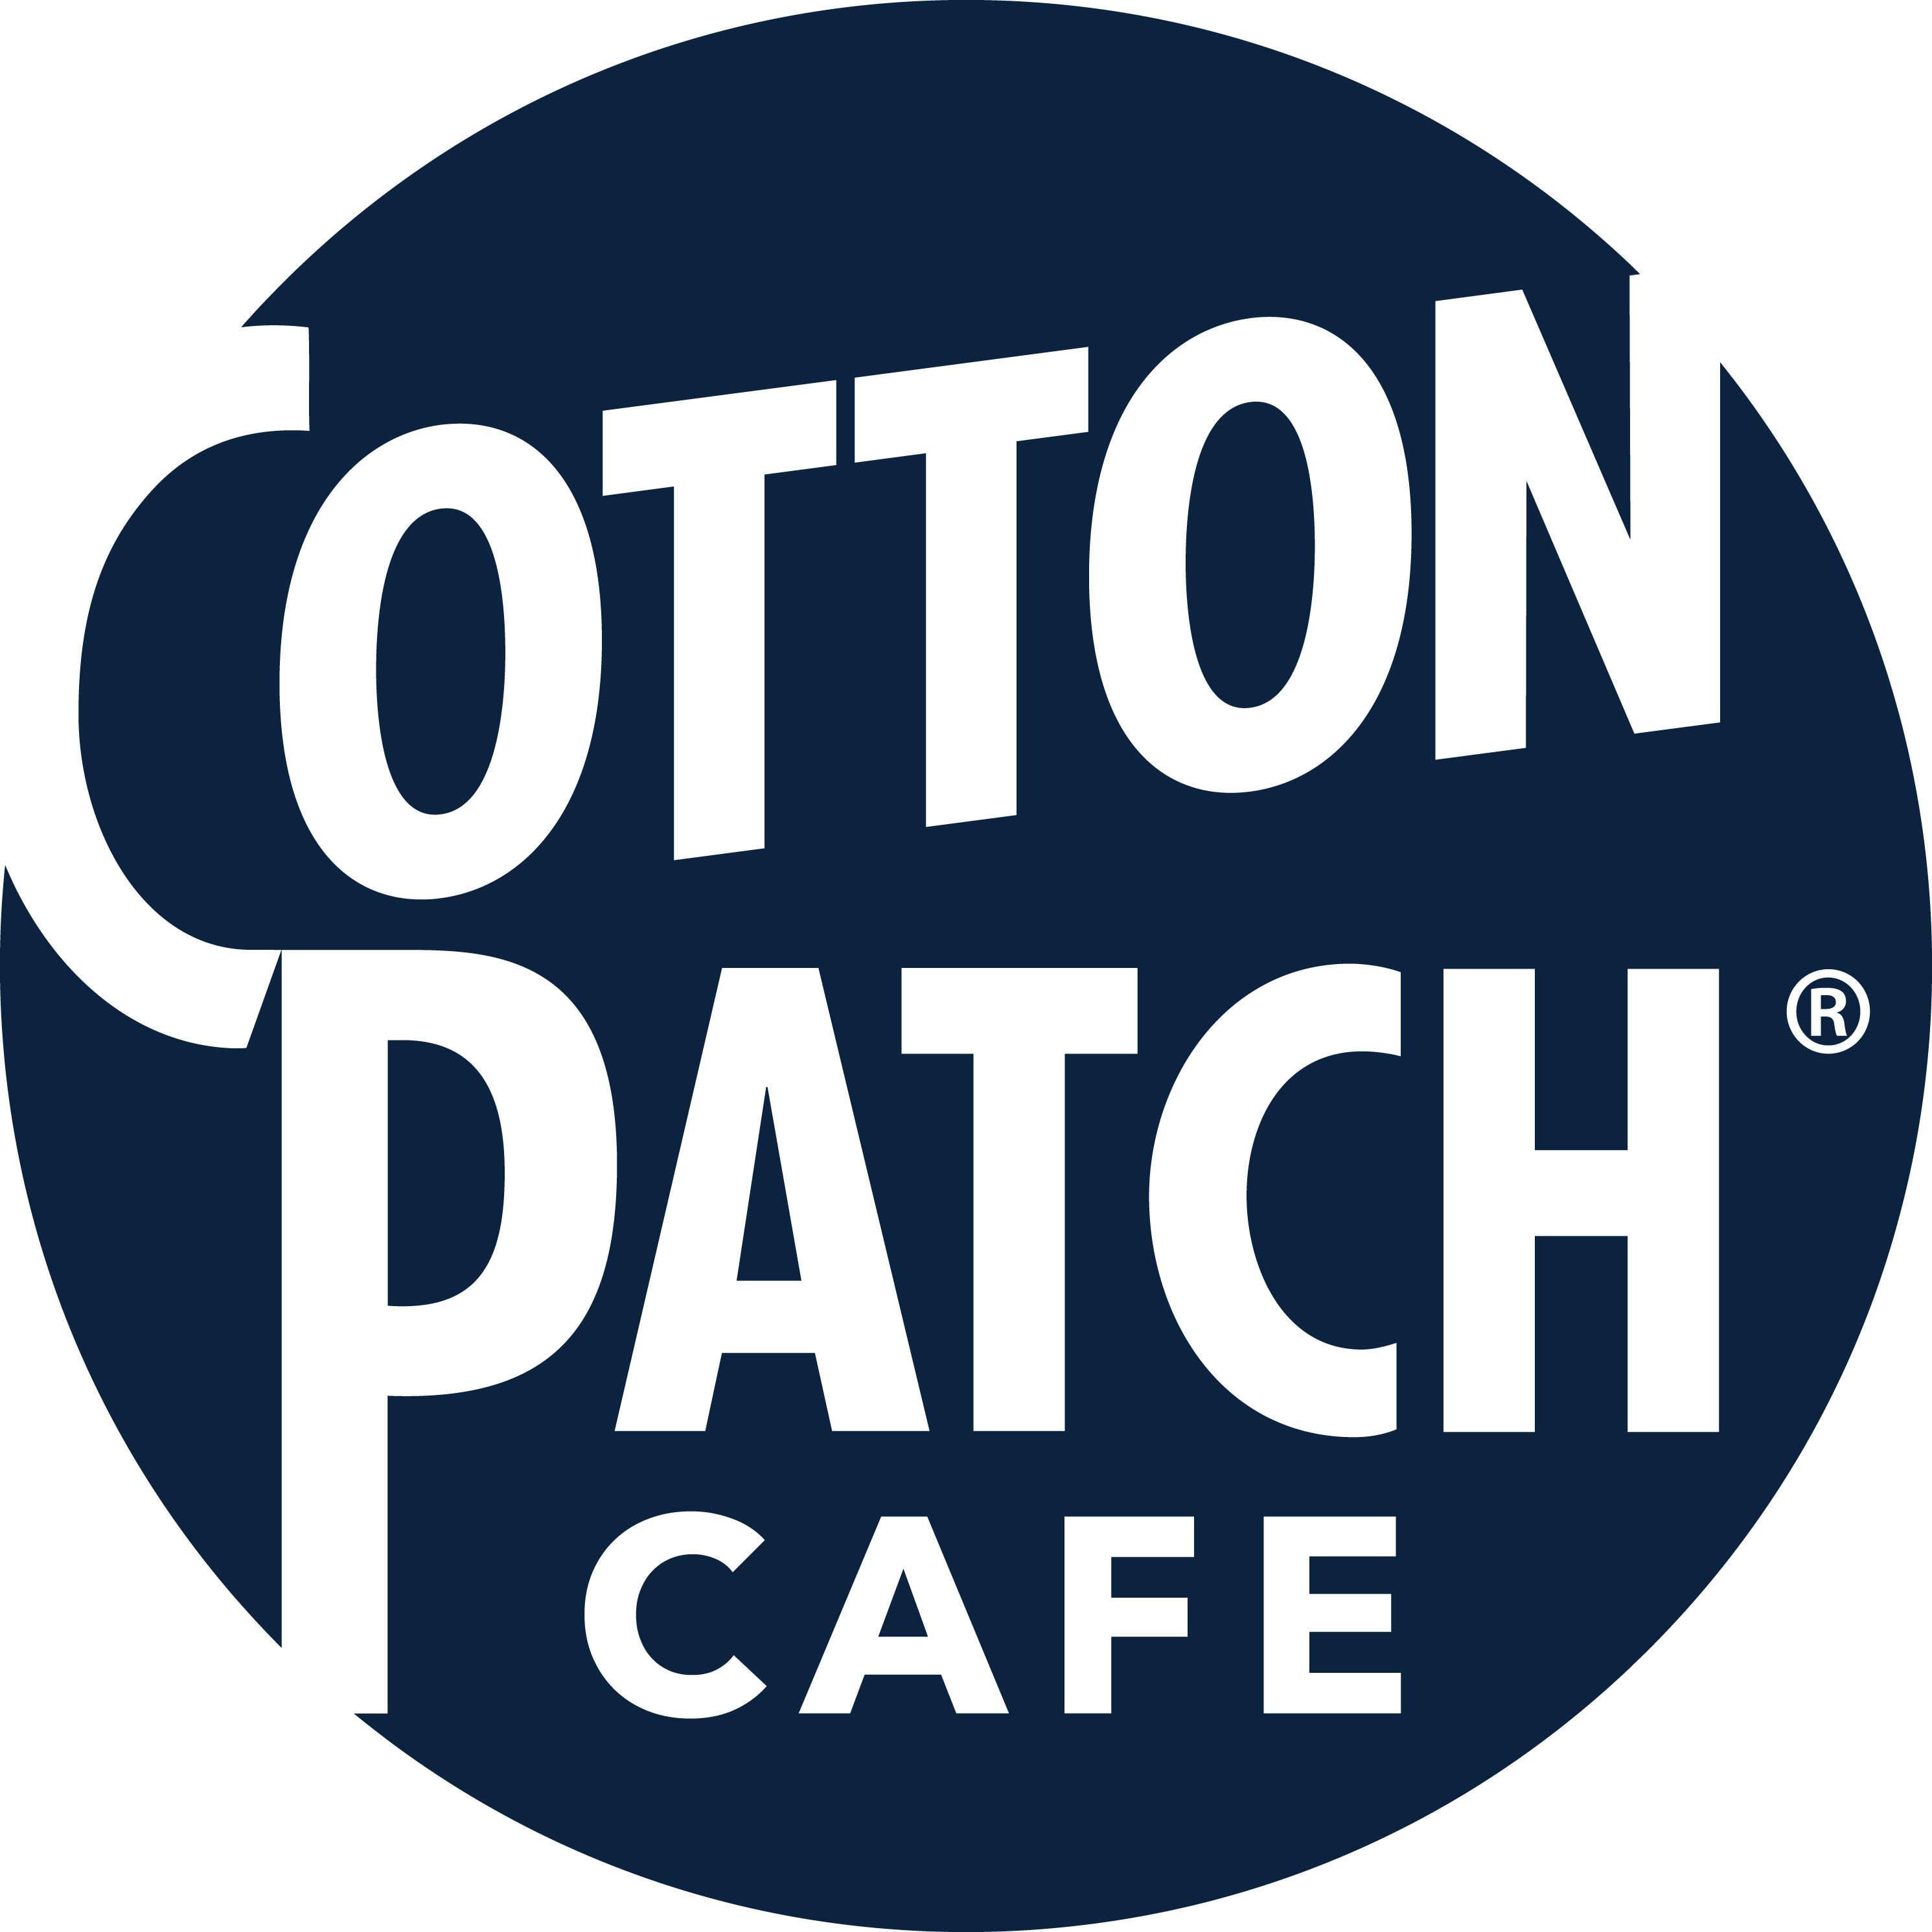 Cotton Patch Cafe